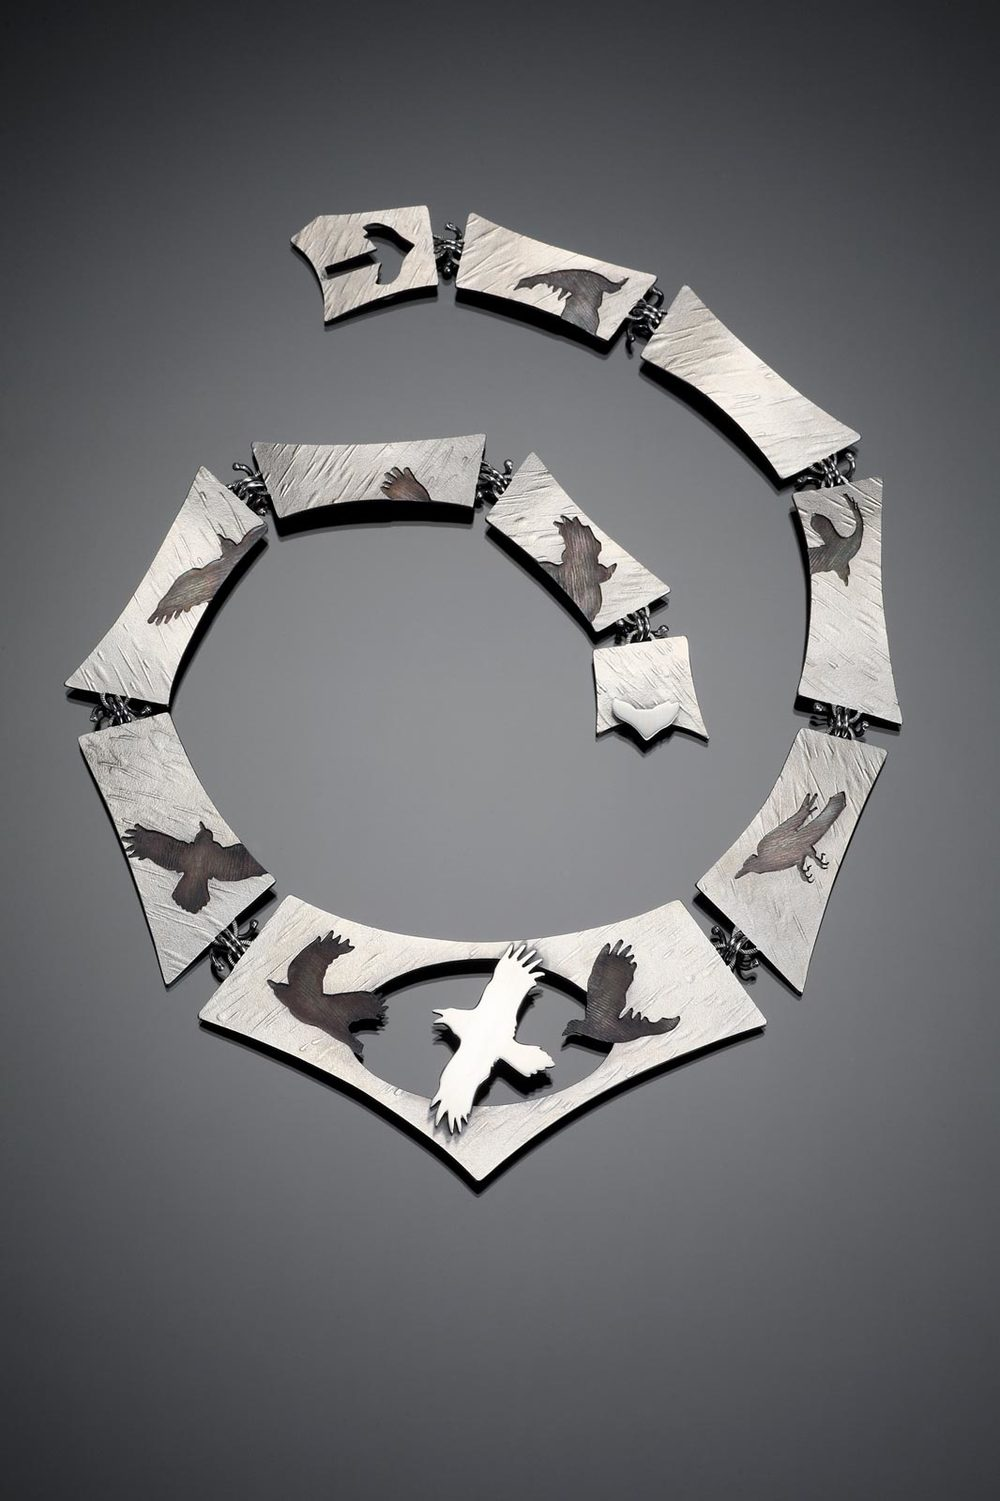 RAVEN IN FLIGHT: THE SEEN AND UNSEEN necklace of sterling silver, 19.69 x 16.51 x 0.64 x 45.72 centimeters, 2009.